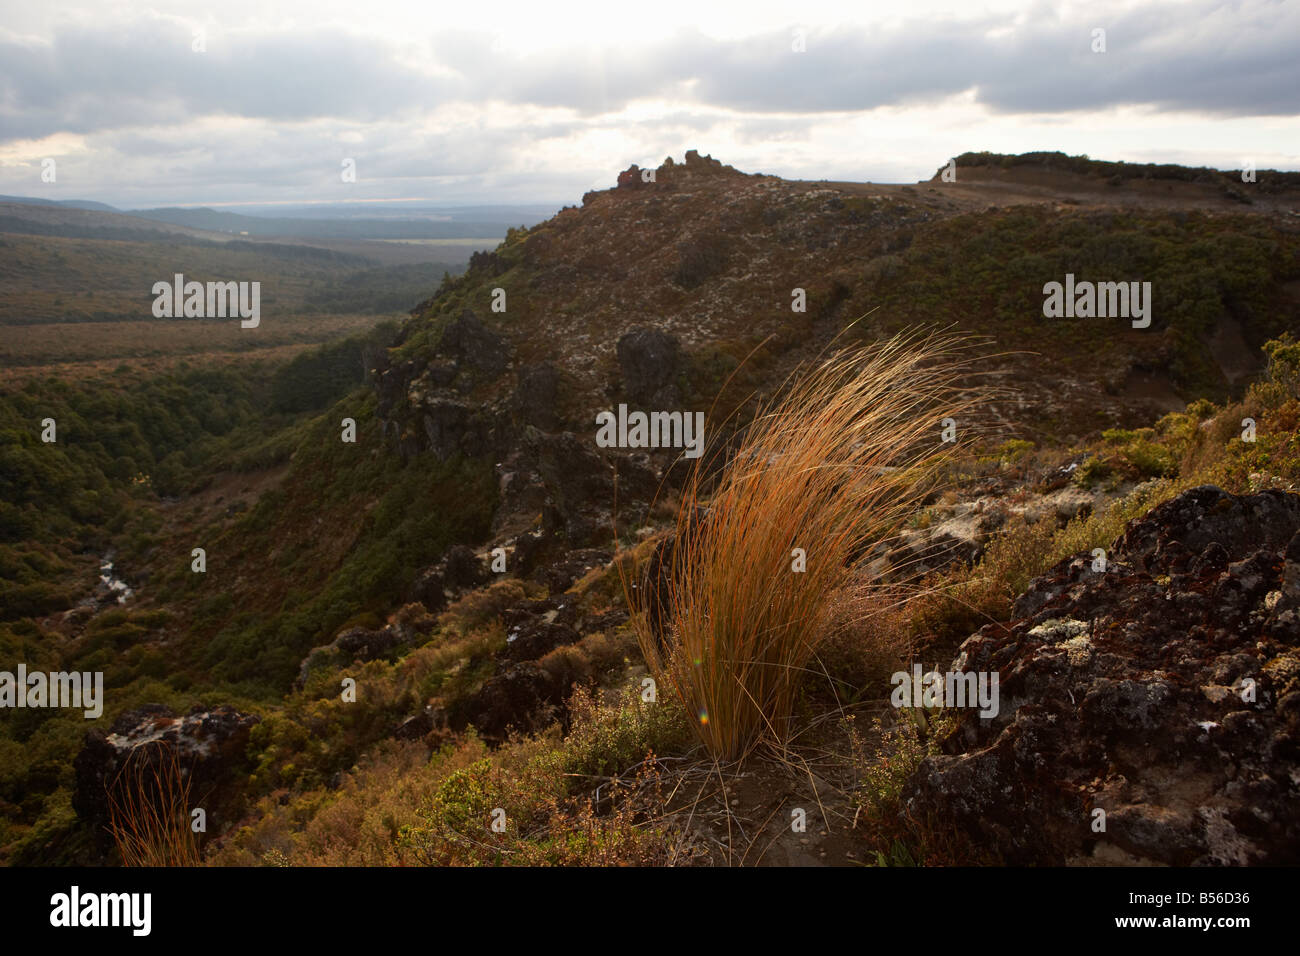 Long grass on rocky path catching the evening sun in front of valley and rocky vista Central Plateau North Island - Stock Image